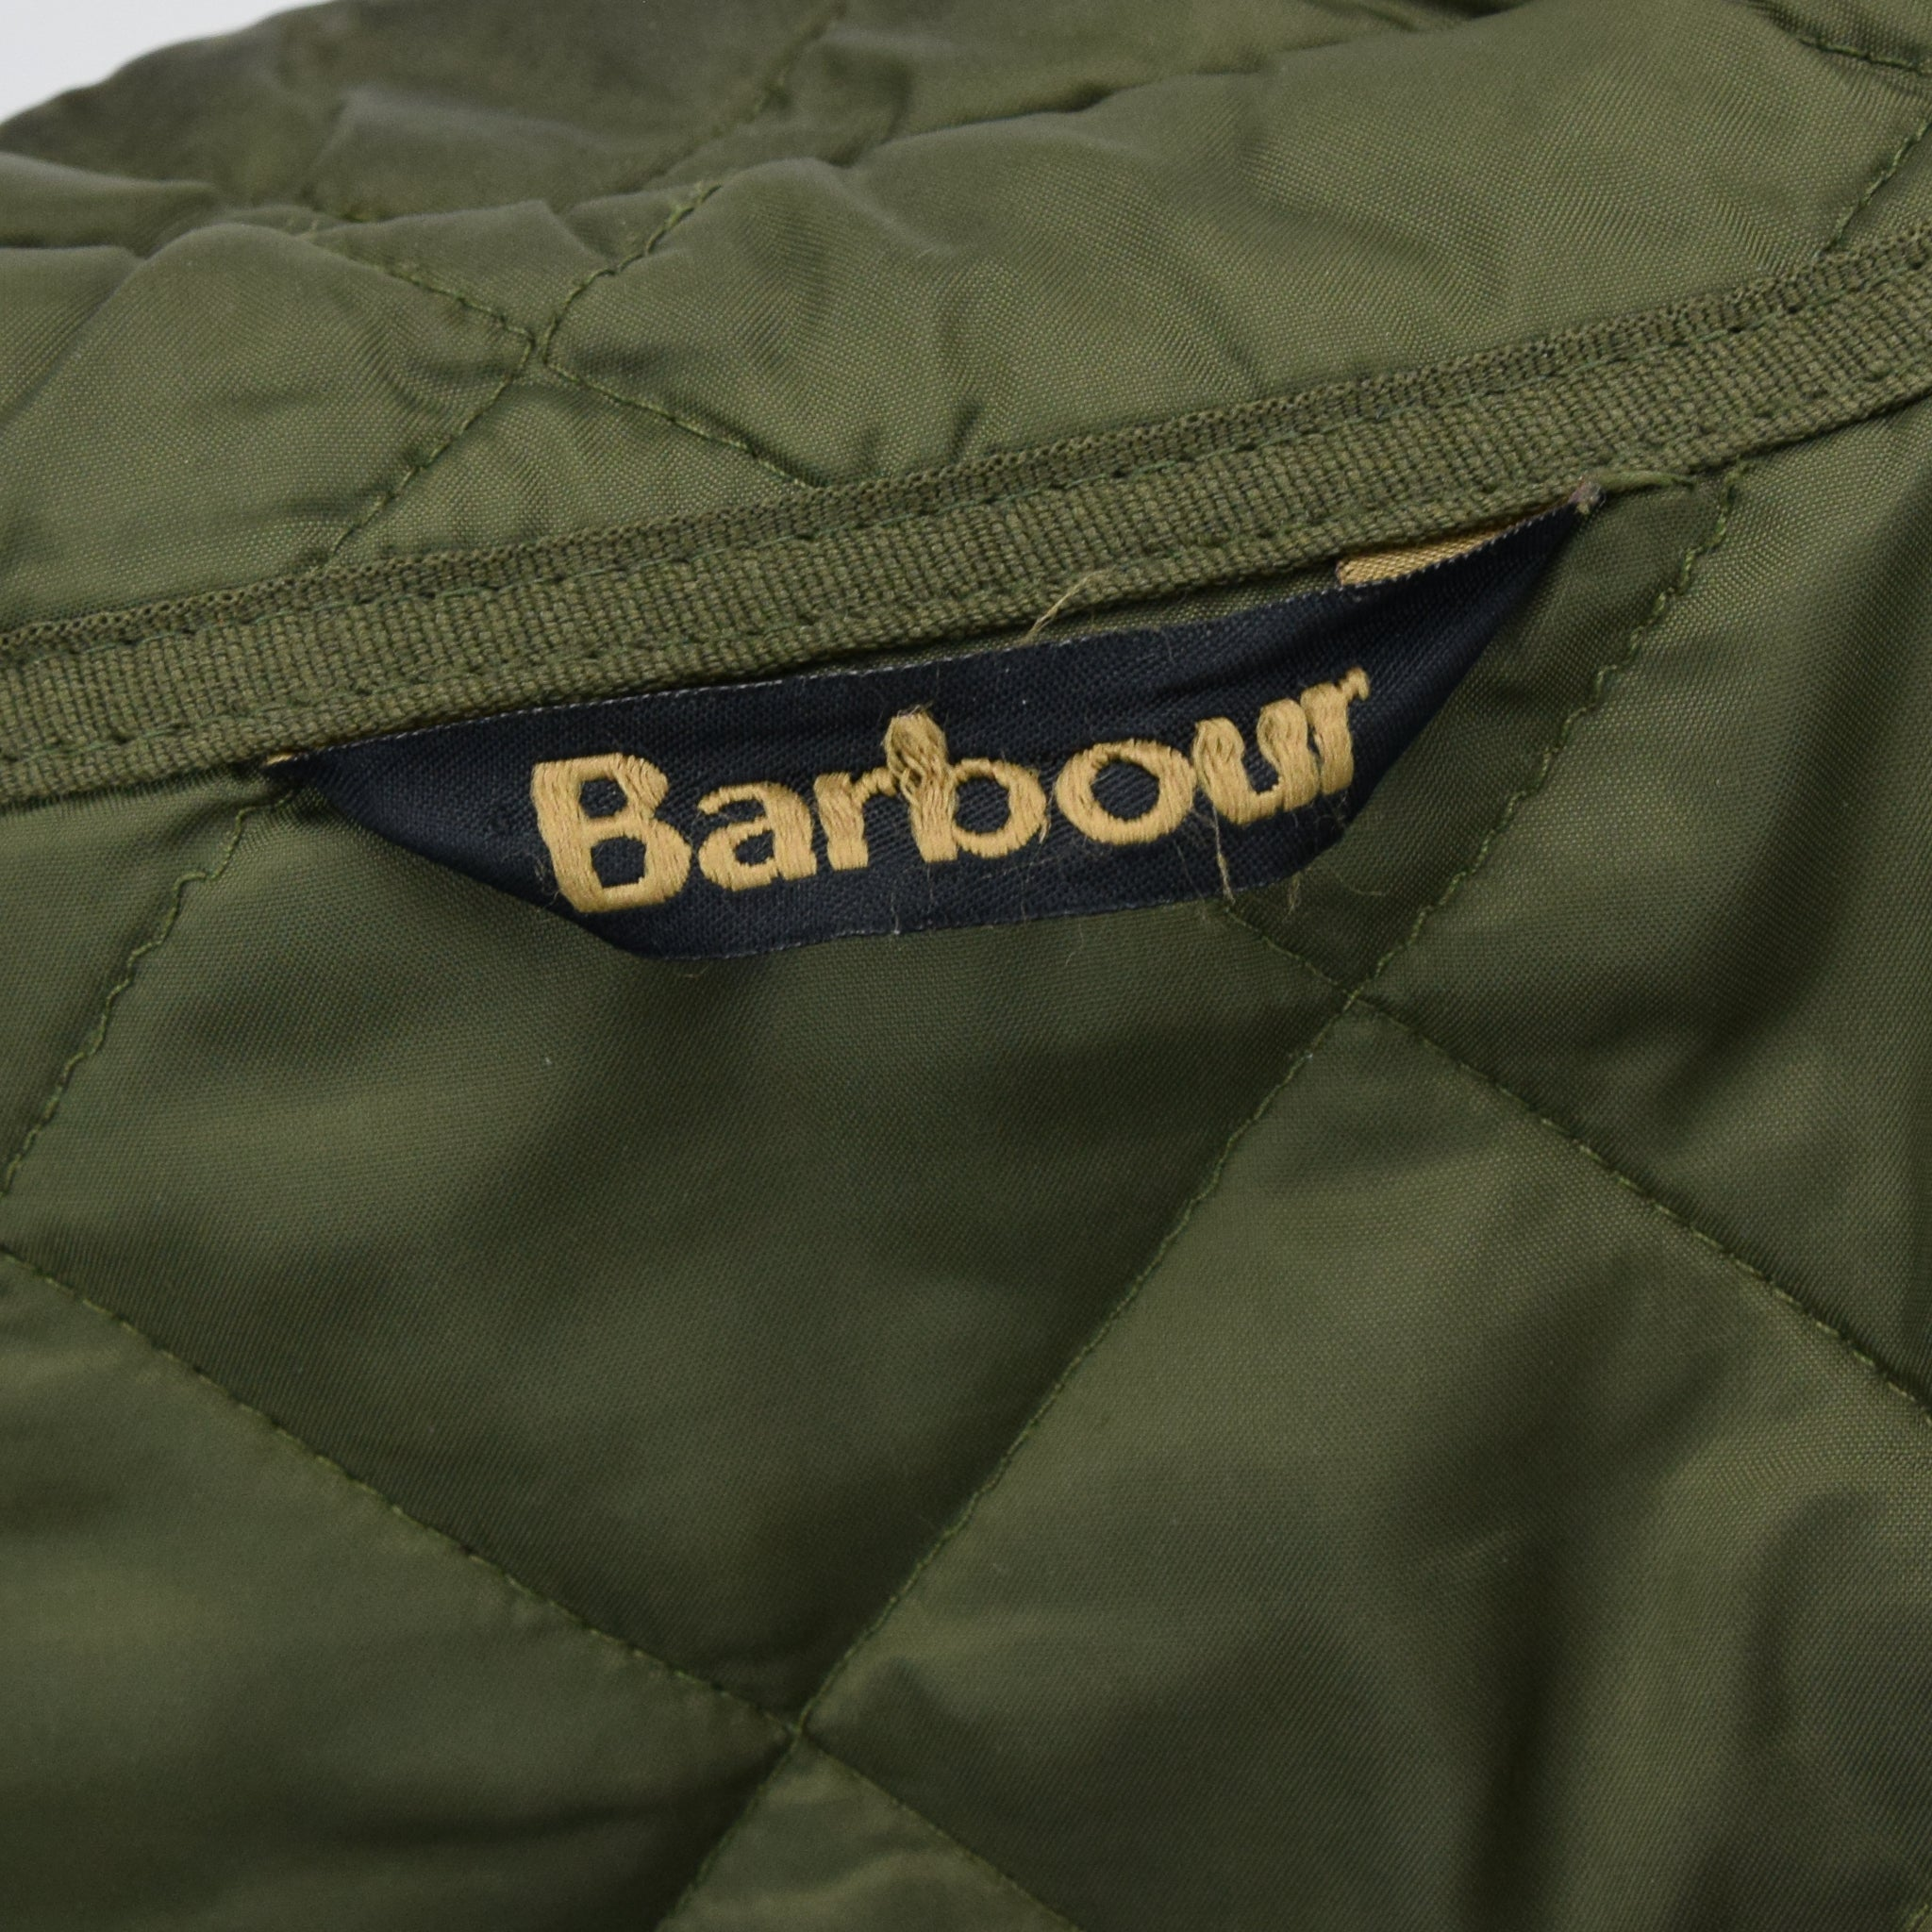 Barbour New Keeperwear Hunting Green Quilted Shooting Jacket Suede Patches M label